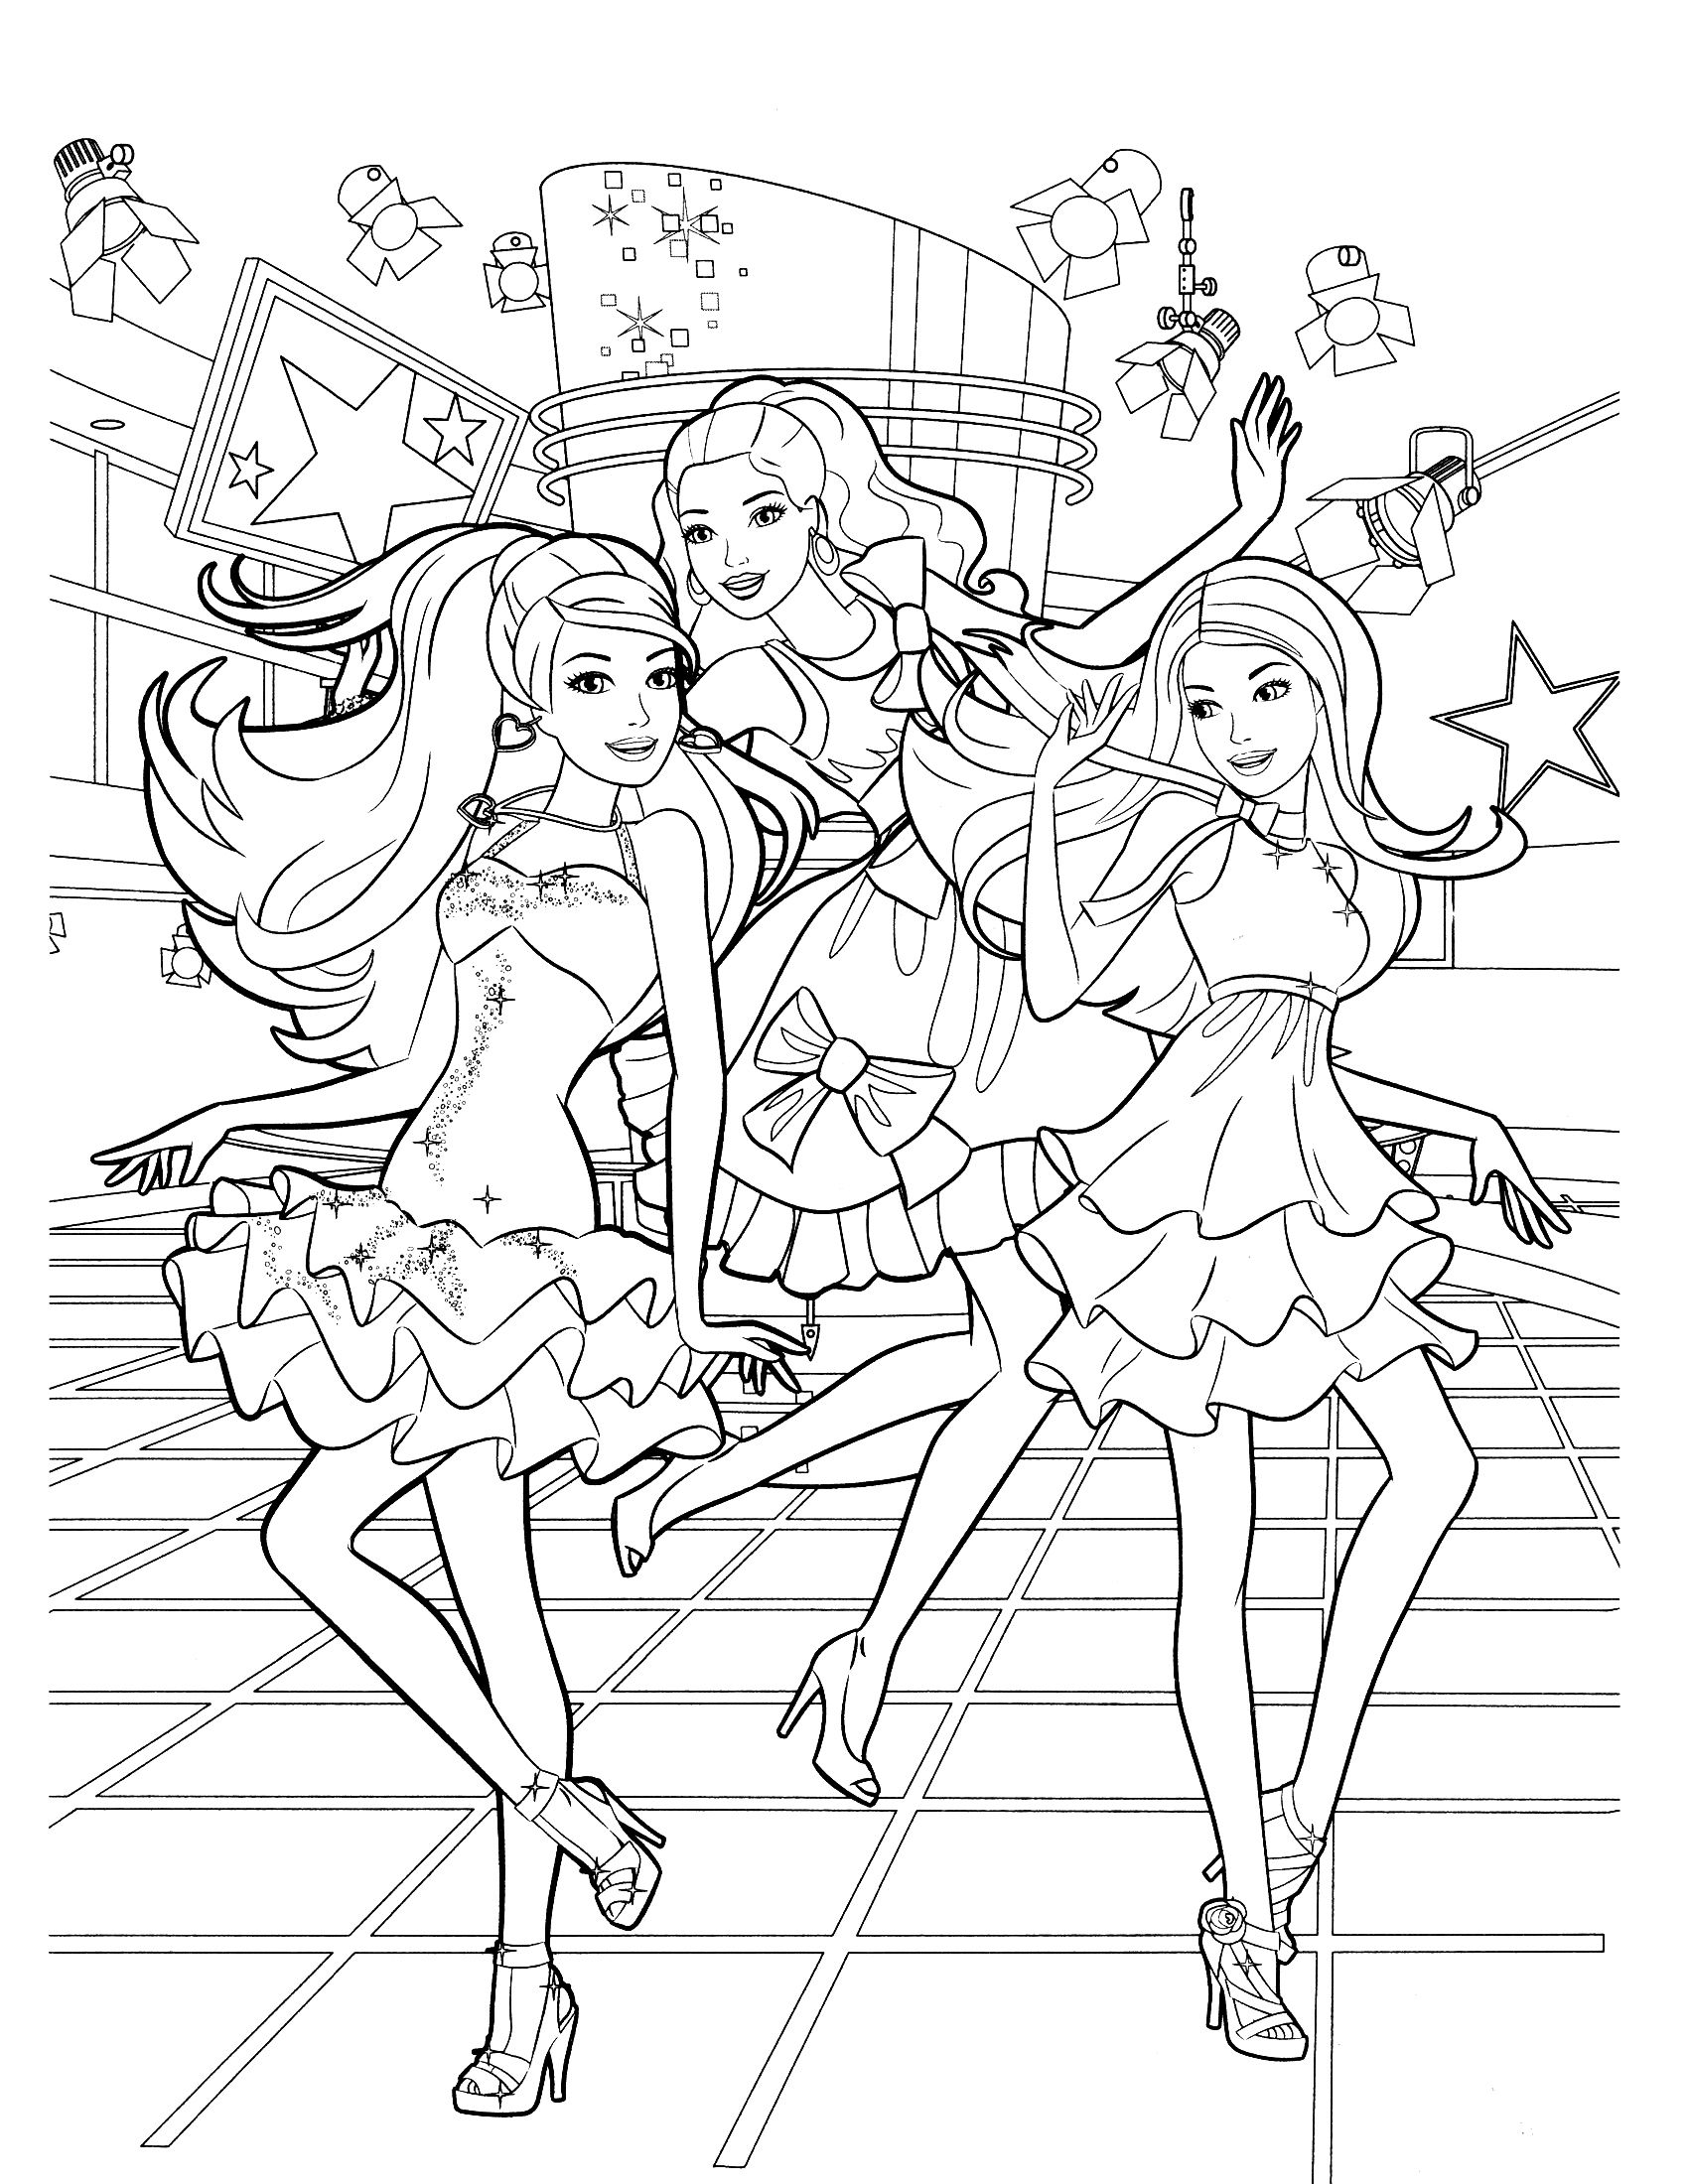 barbie coloring pages coloring pages barbie free printable coloring pages pages barbie coloring 1 1